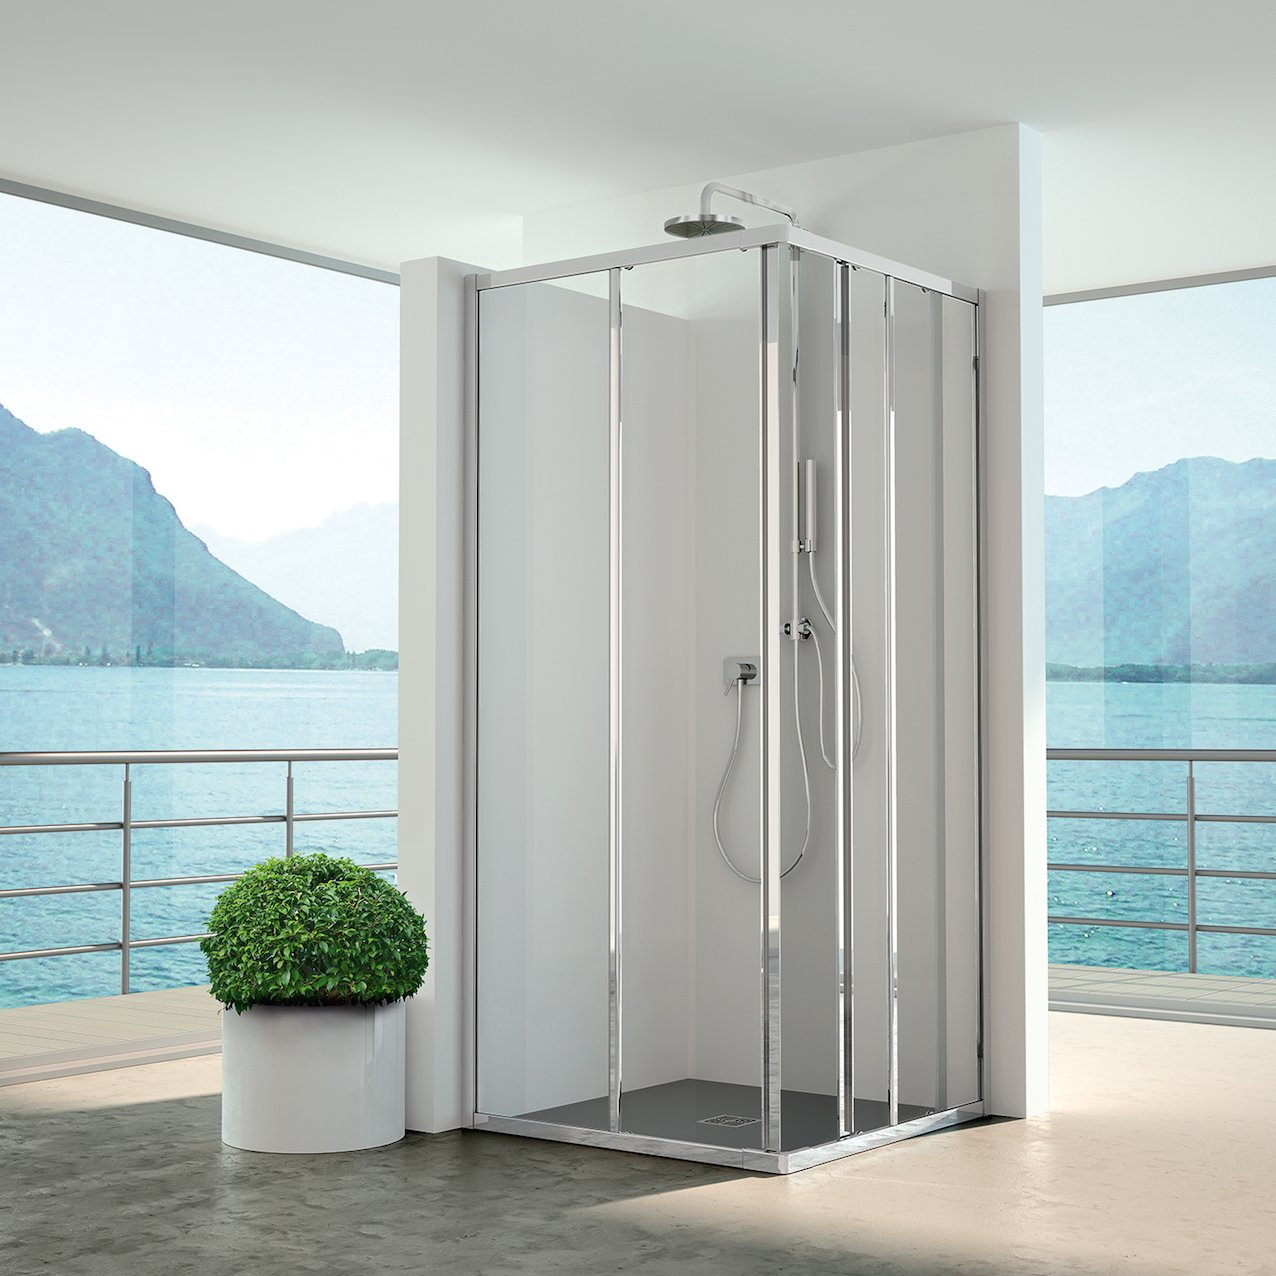 Sliding Shower Enclosure Nevada